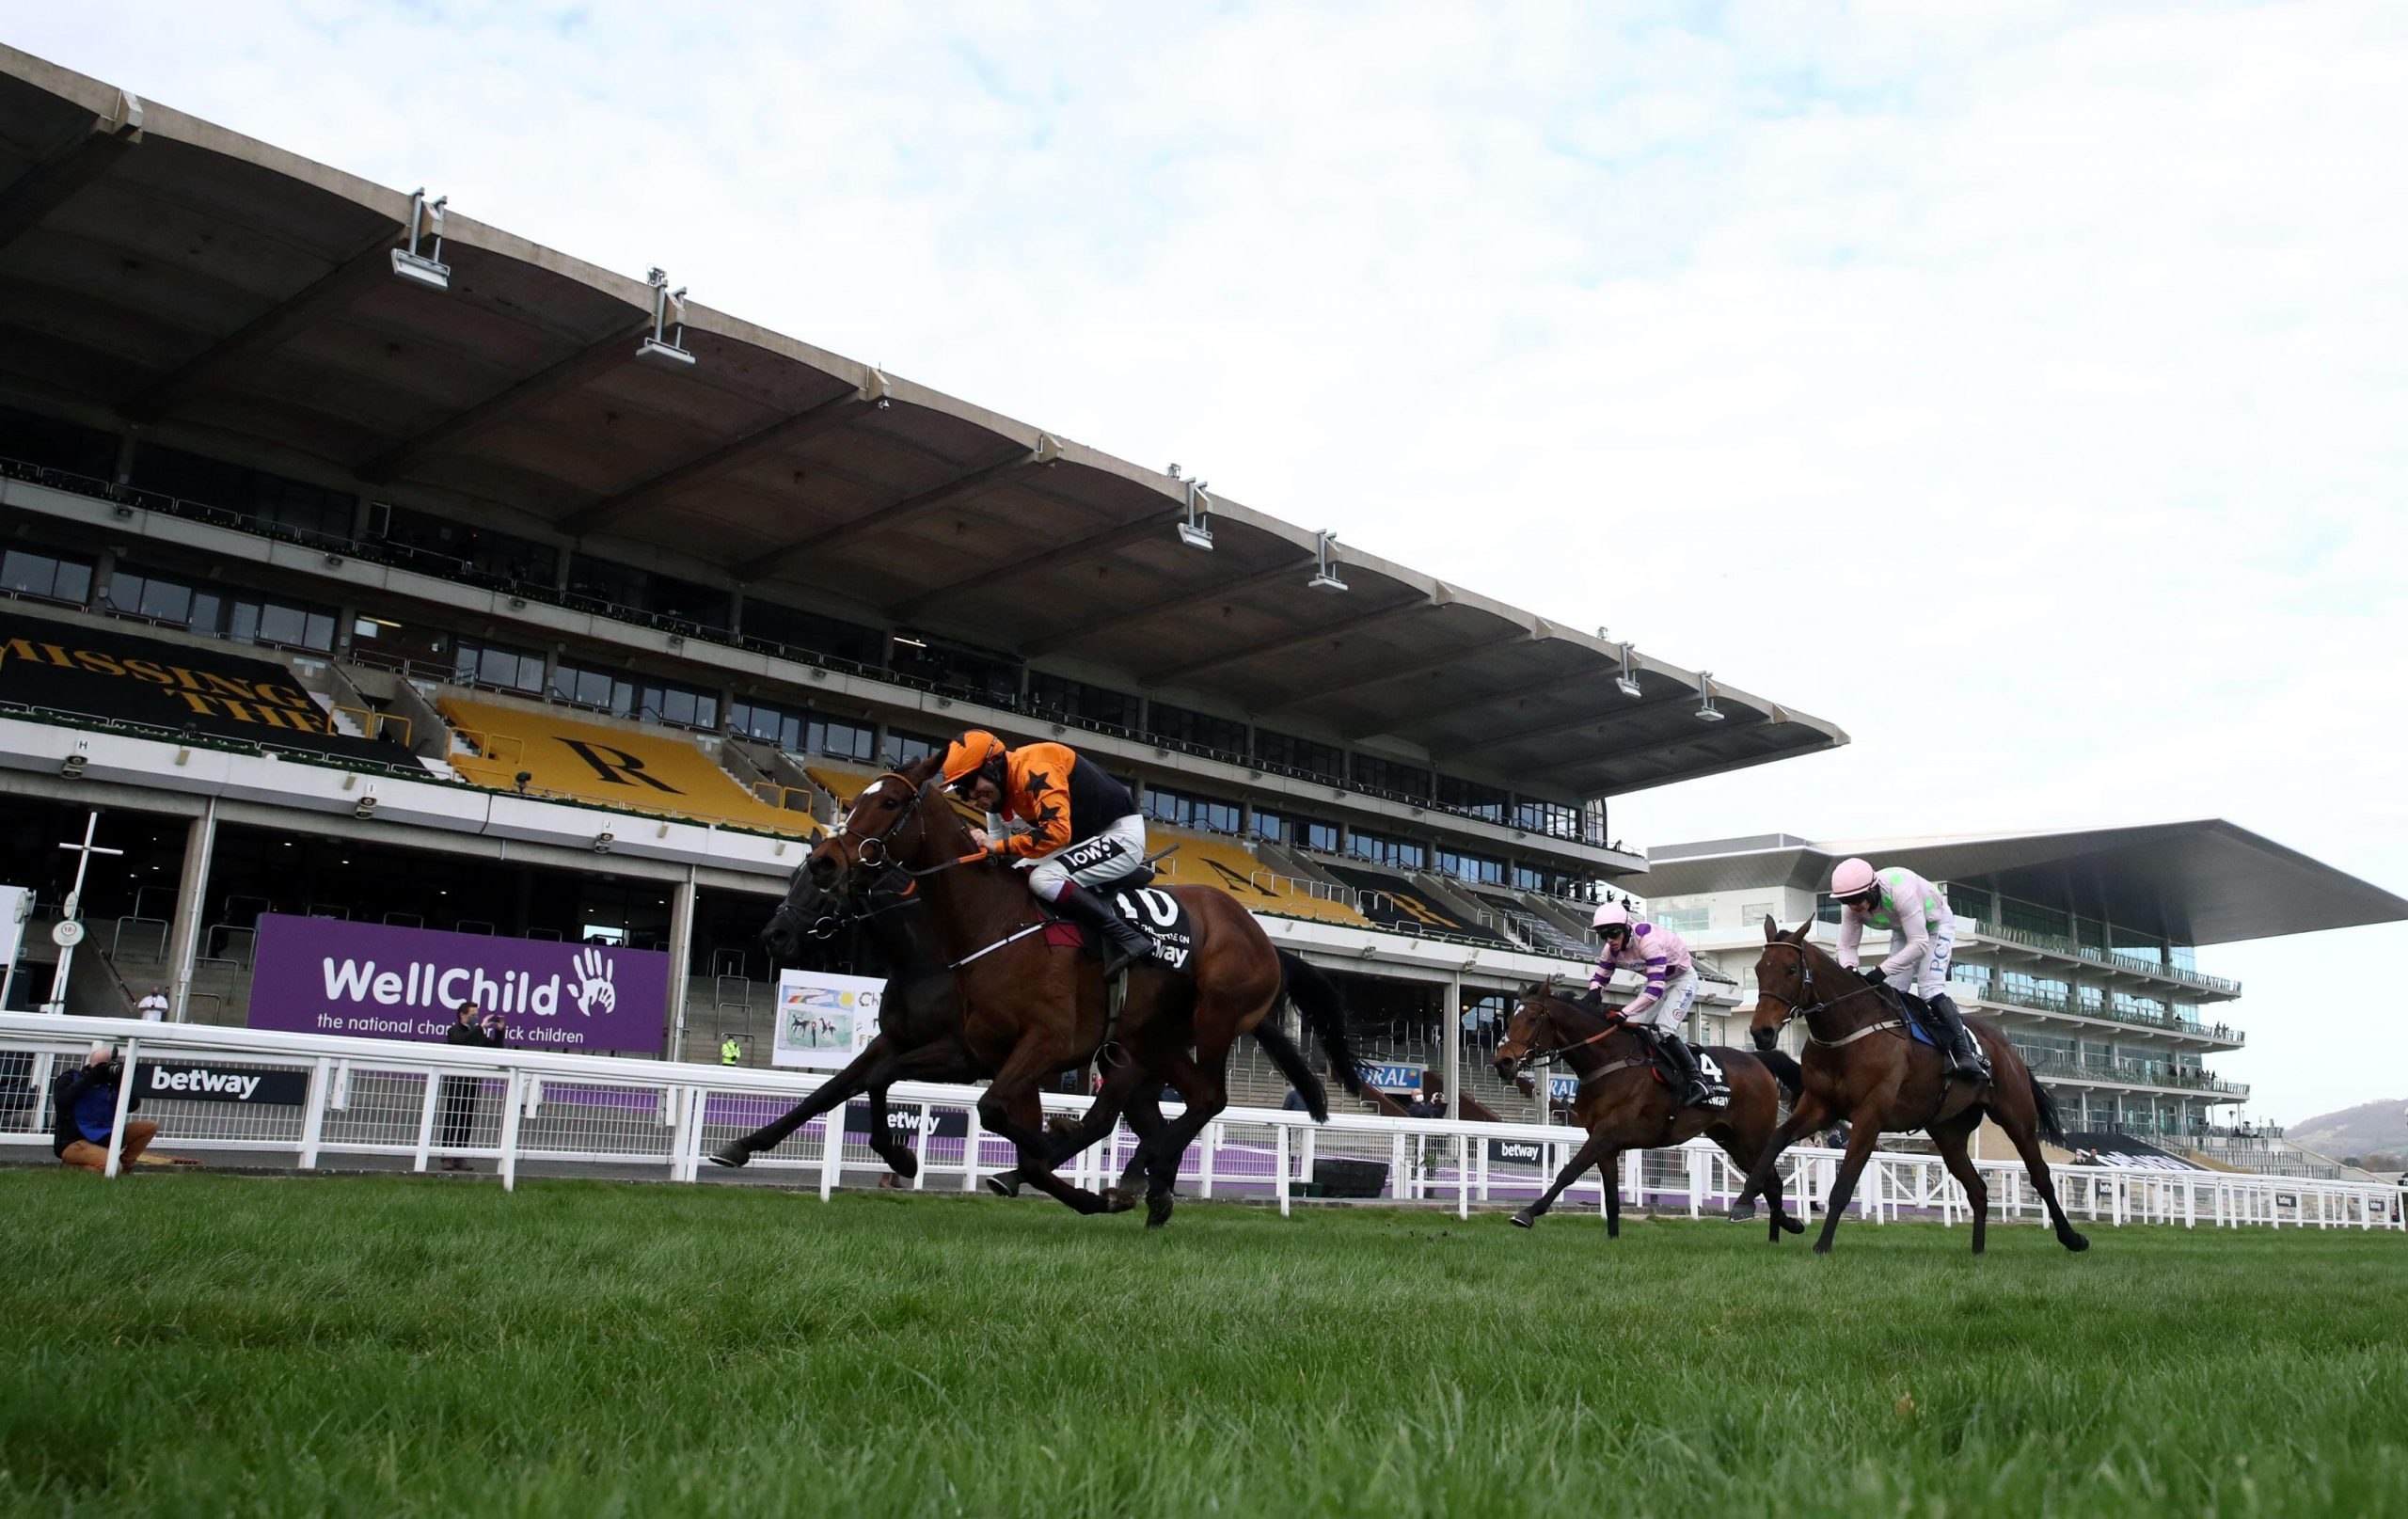 Put The Kettle On ridden by Aidan Coleman on their way to winning the Betway Queen Mother Champion Chase on day two of the Cheltenham Festival at Cheltenham Racecourse. Picture date: Wednesday March 17, 2021.